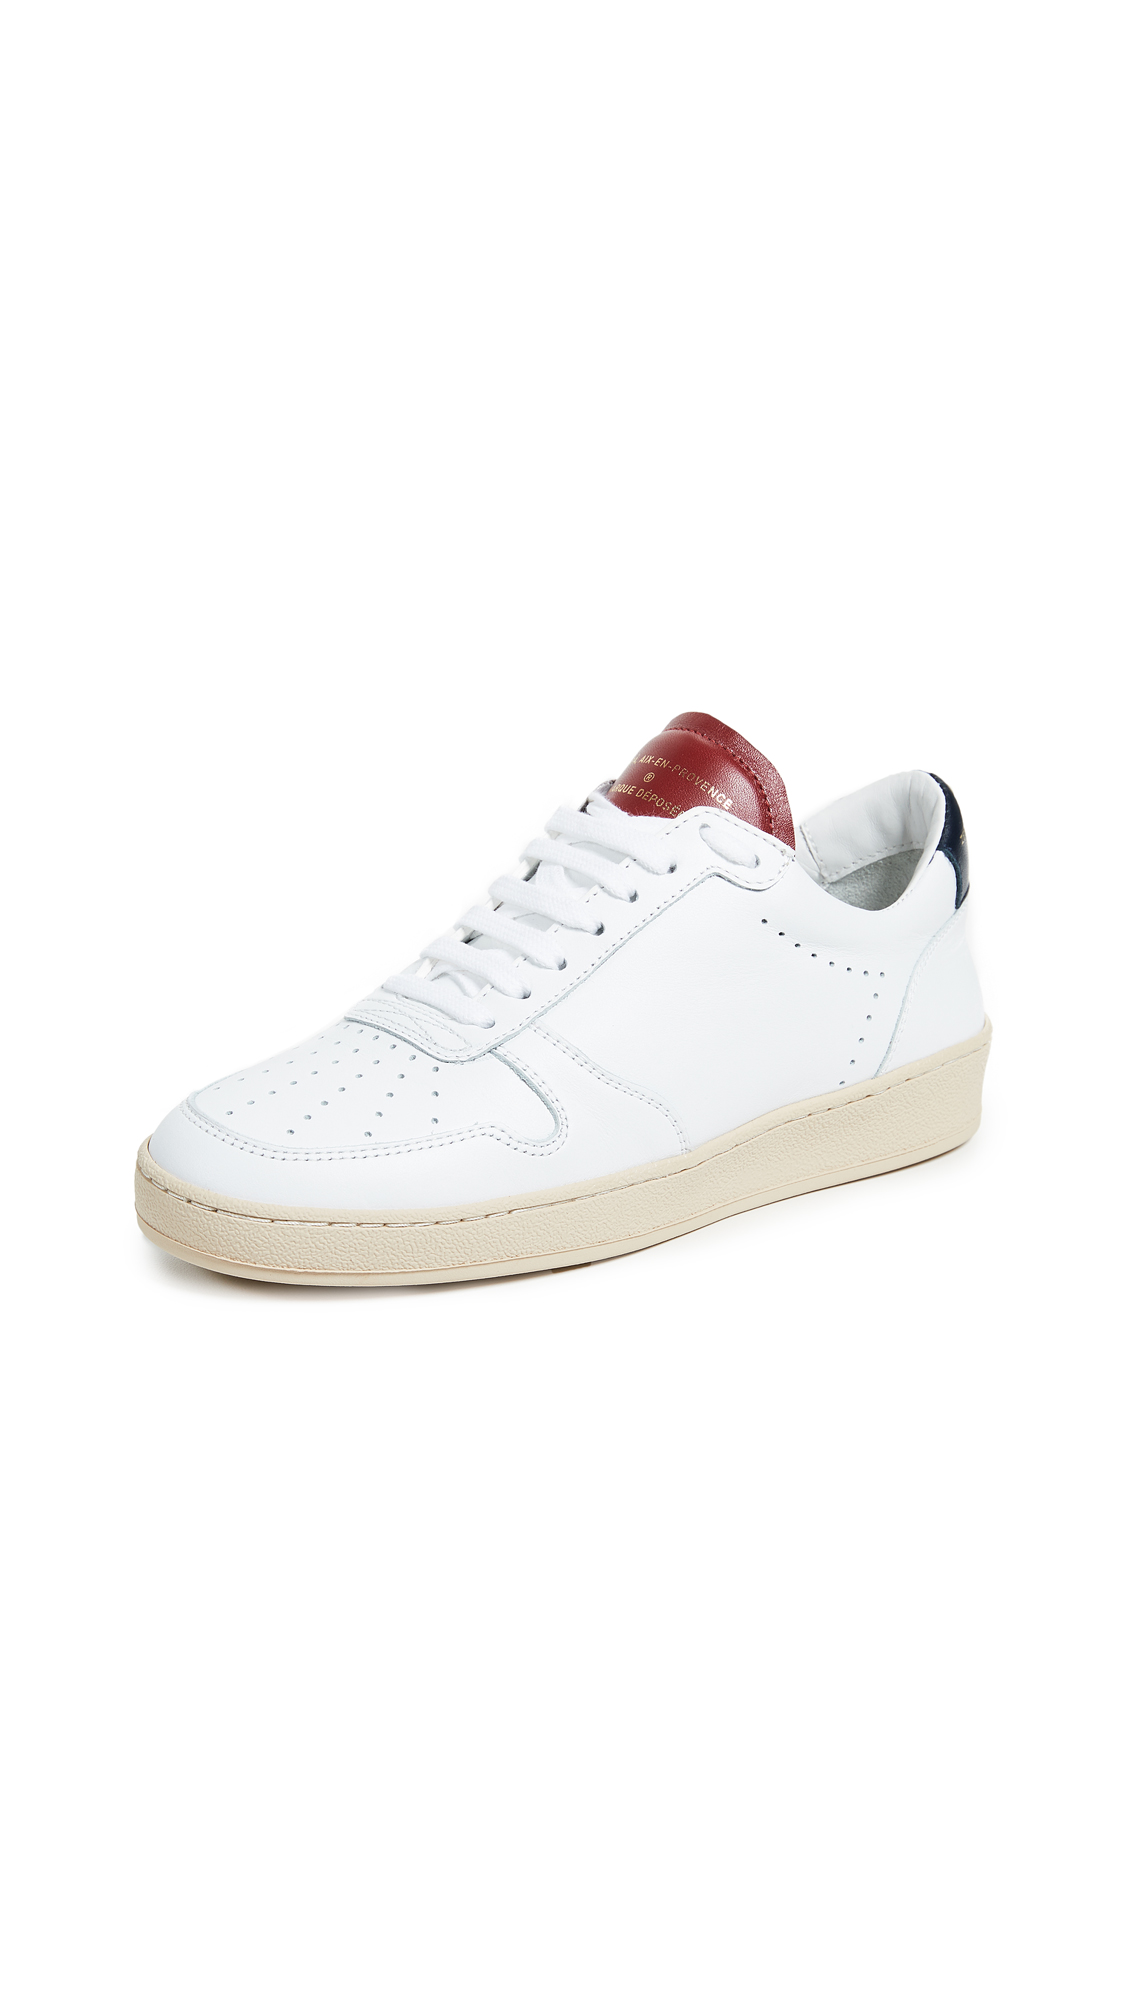 Zespa Lace Up Sneakers - White/Red/Navy